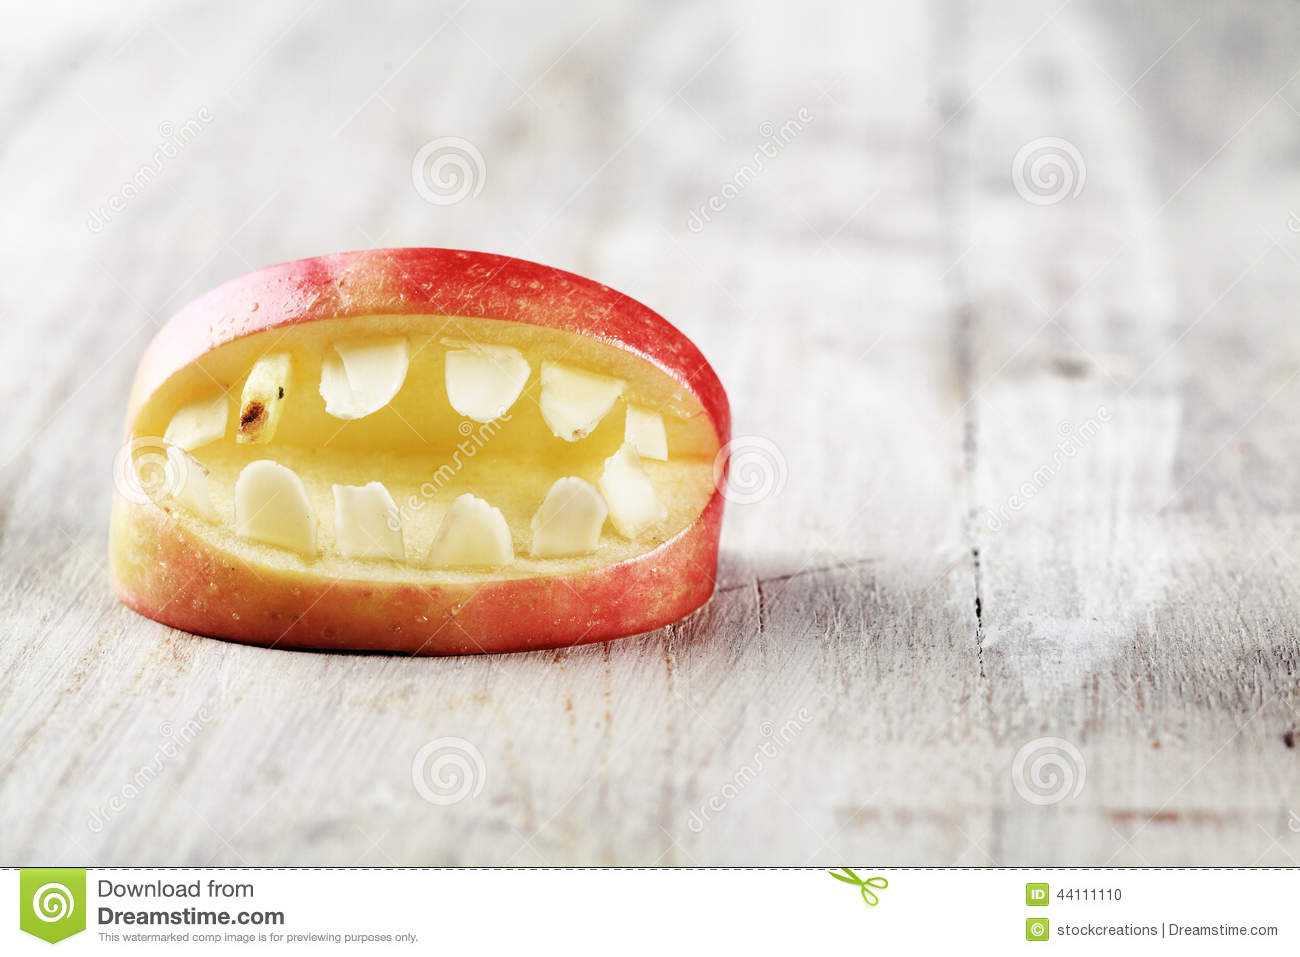 download scary halloween apple mouth with teeth stock photo image of carious dentist